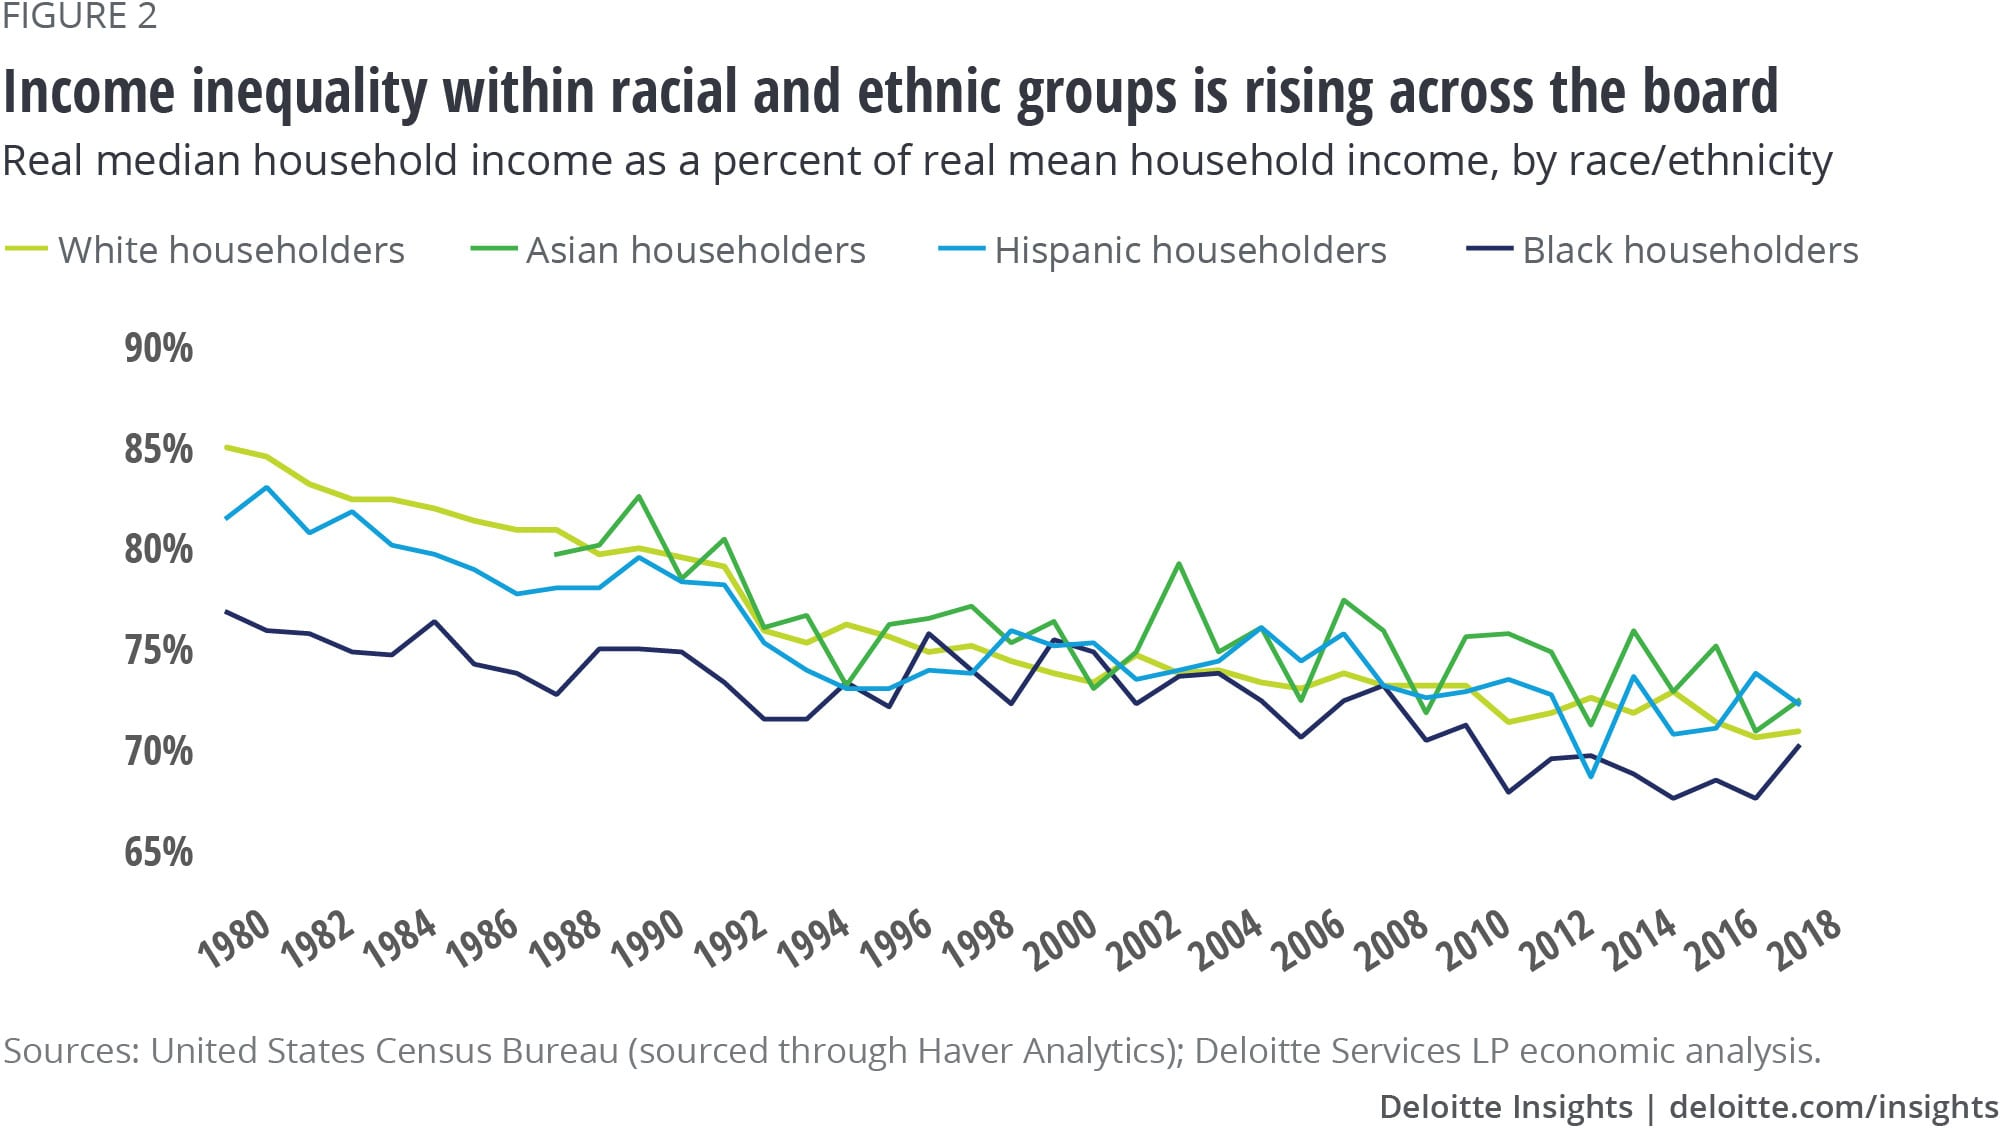 Income inequality within racial and ethnic groups is rising across the board